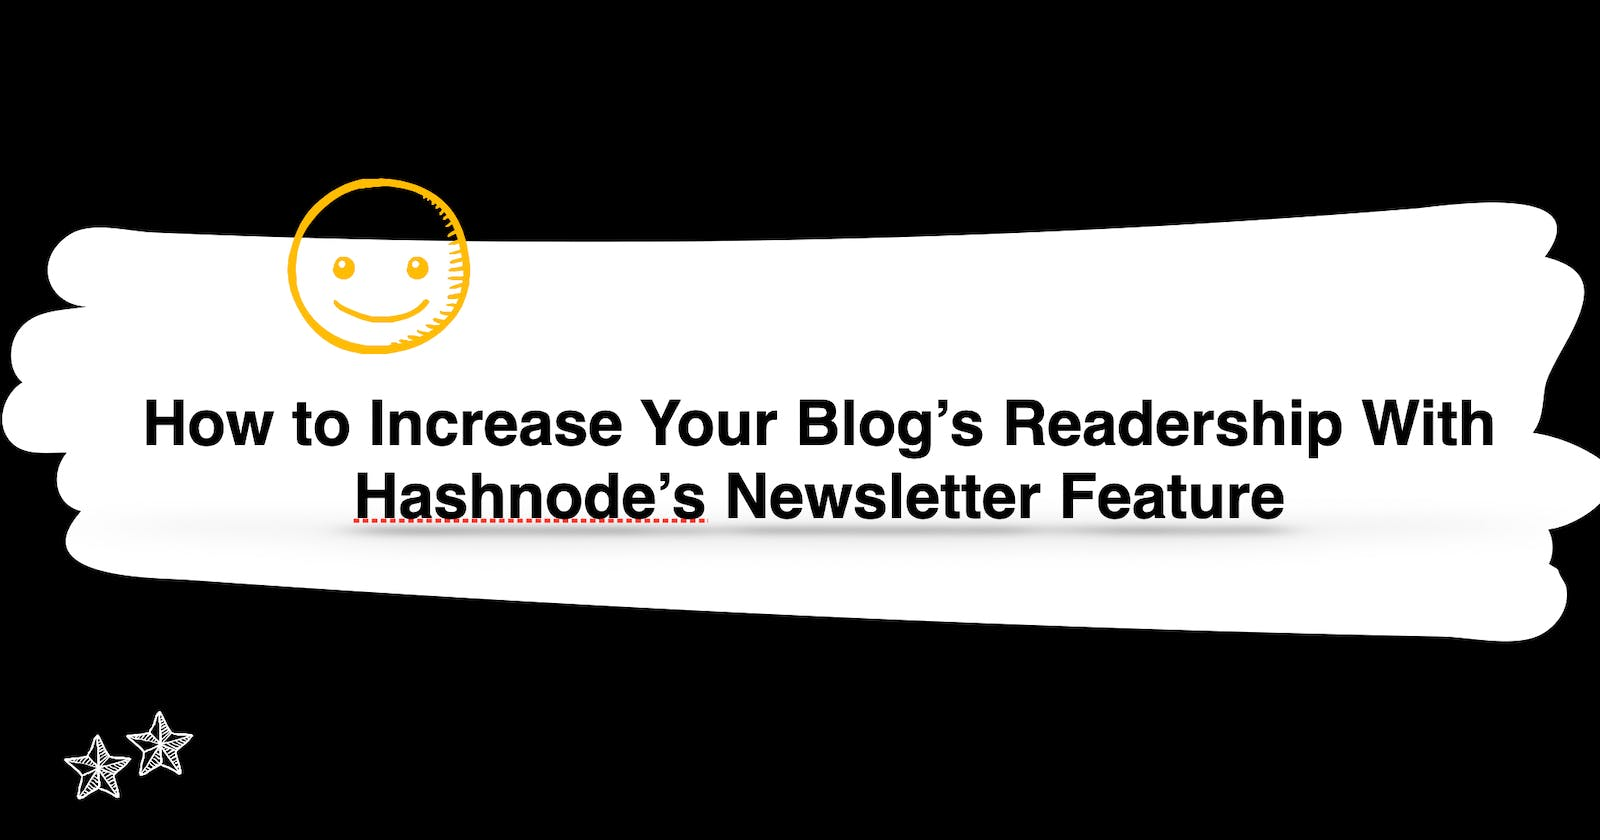 How to Increase Your Blog's Readership With Hashnode's Newsletter Feature